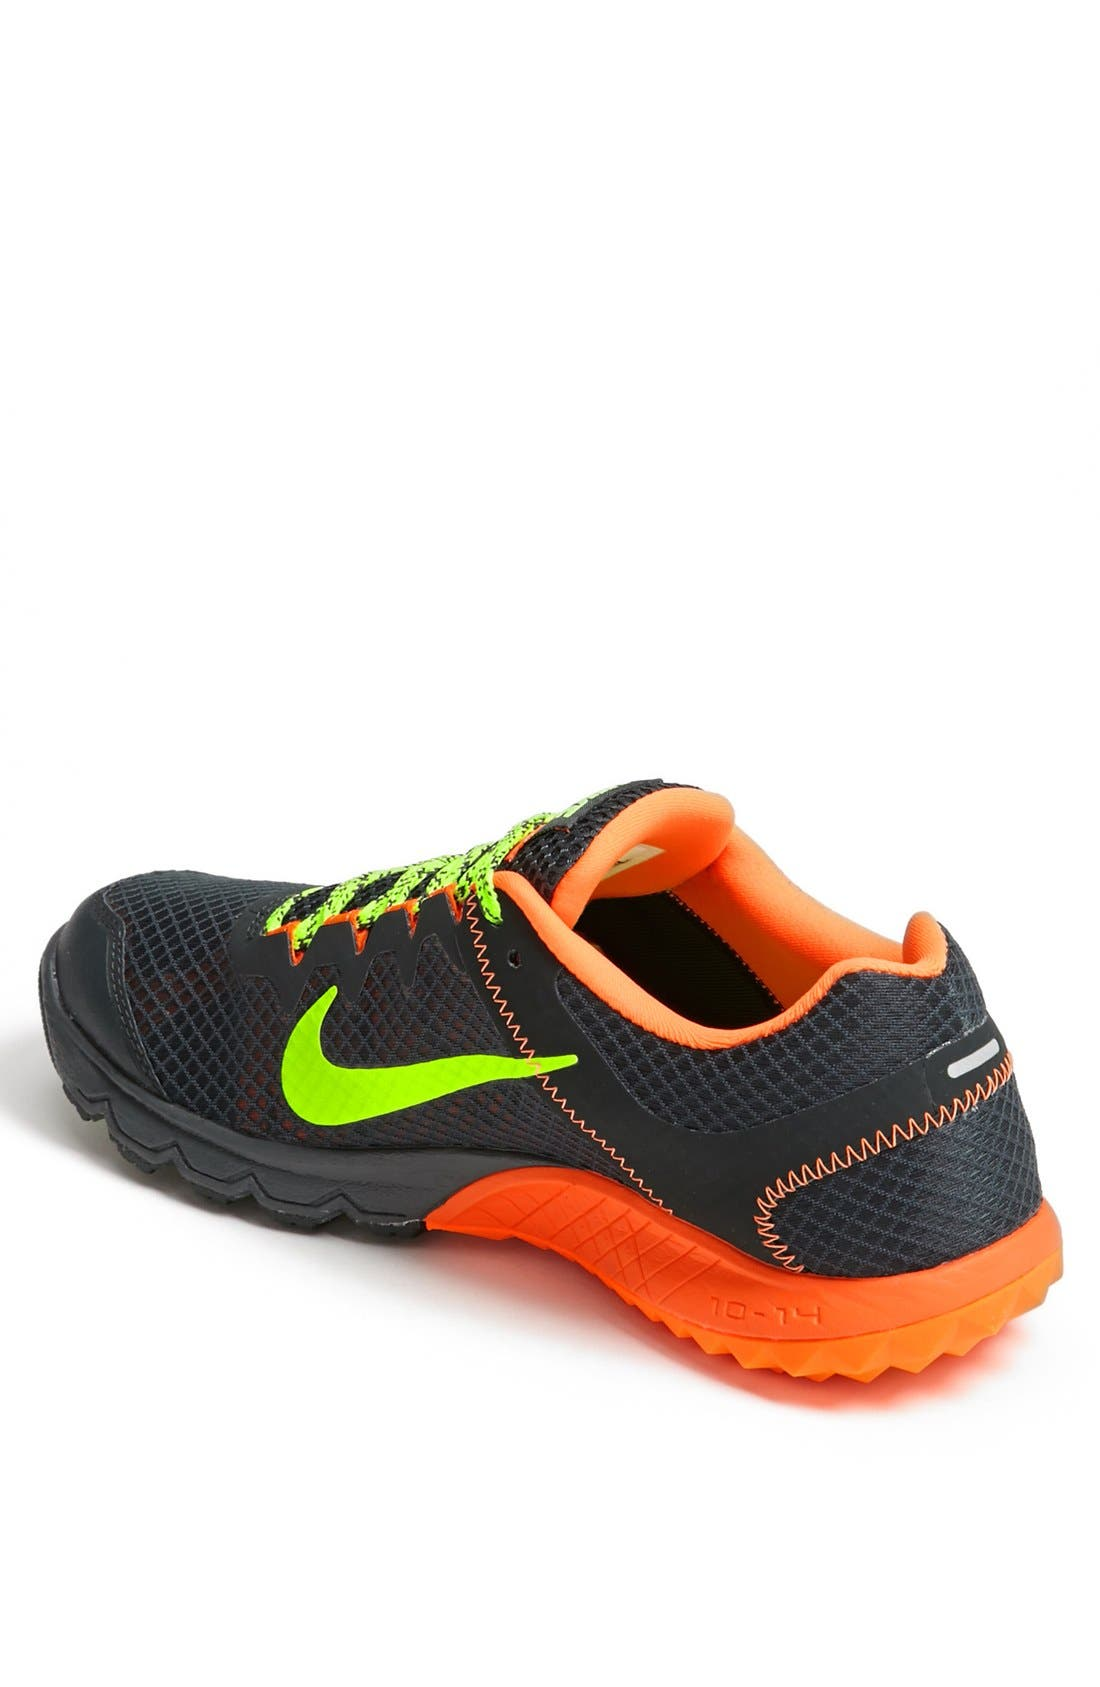 Alternate Image 2  - Nike 'Zoom Wildhorse' Trail Running Shoe (Men)